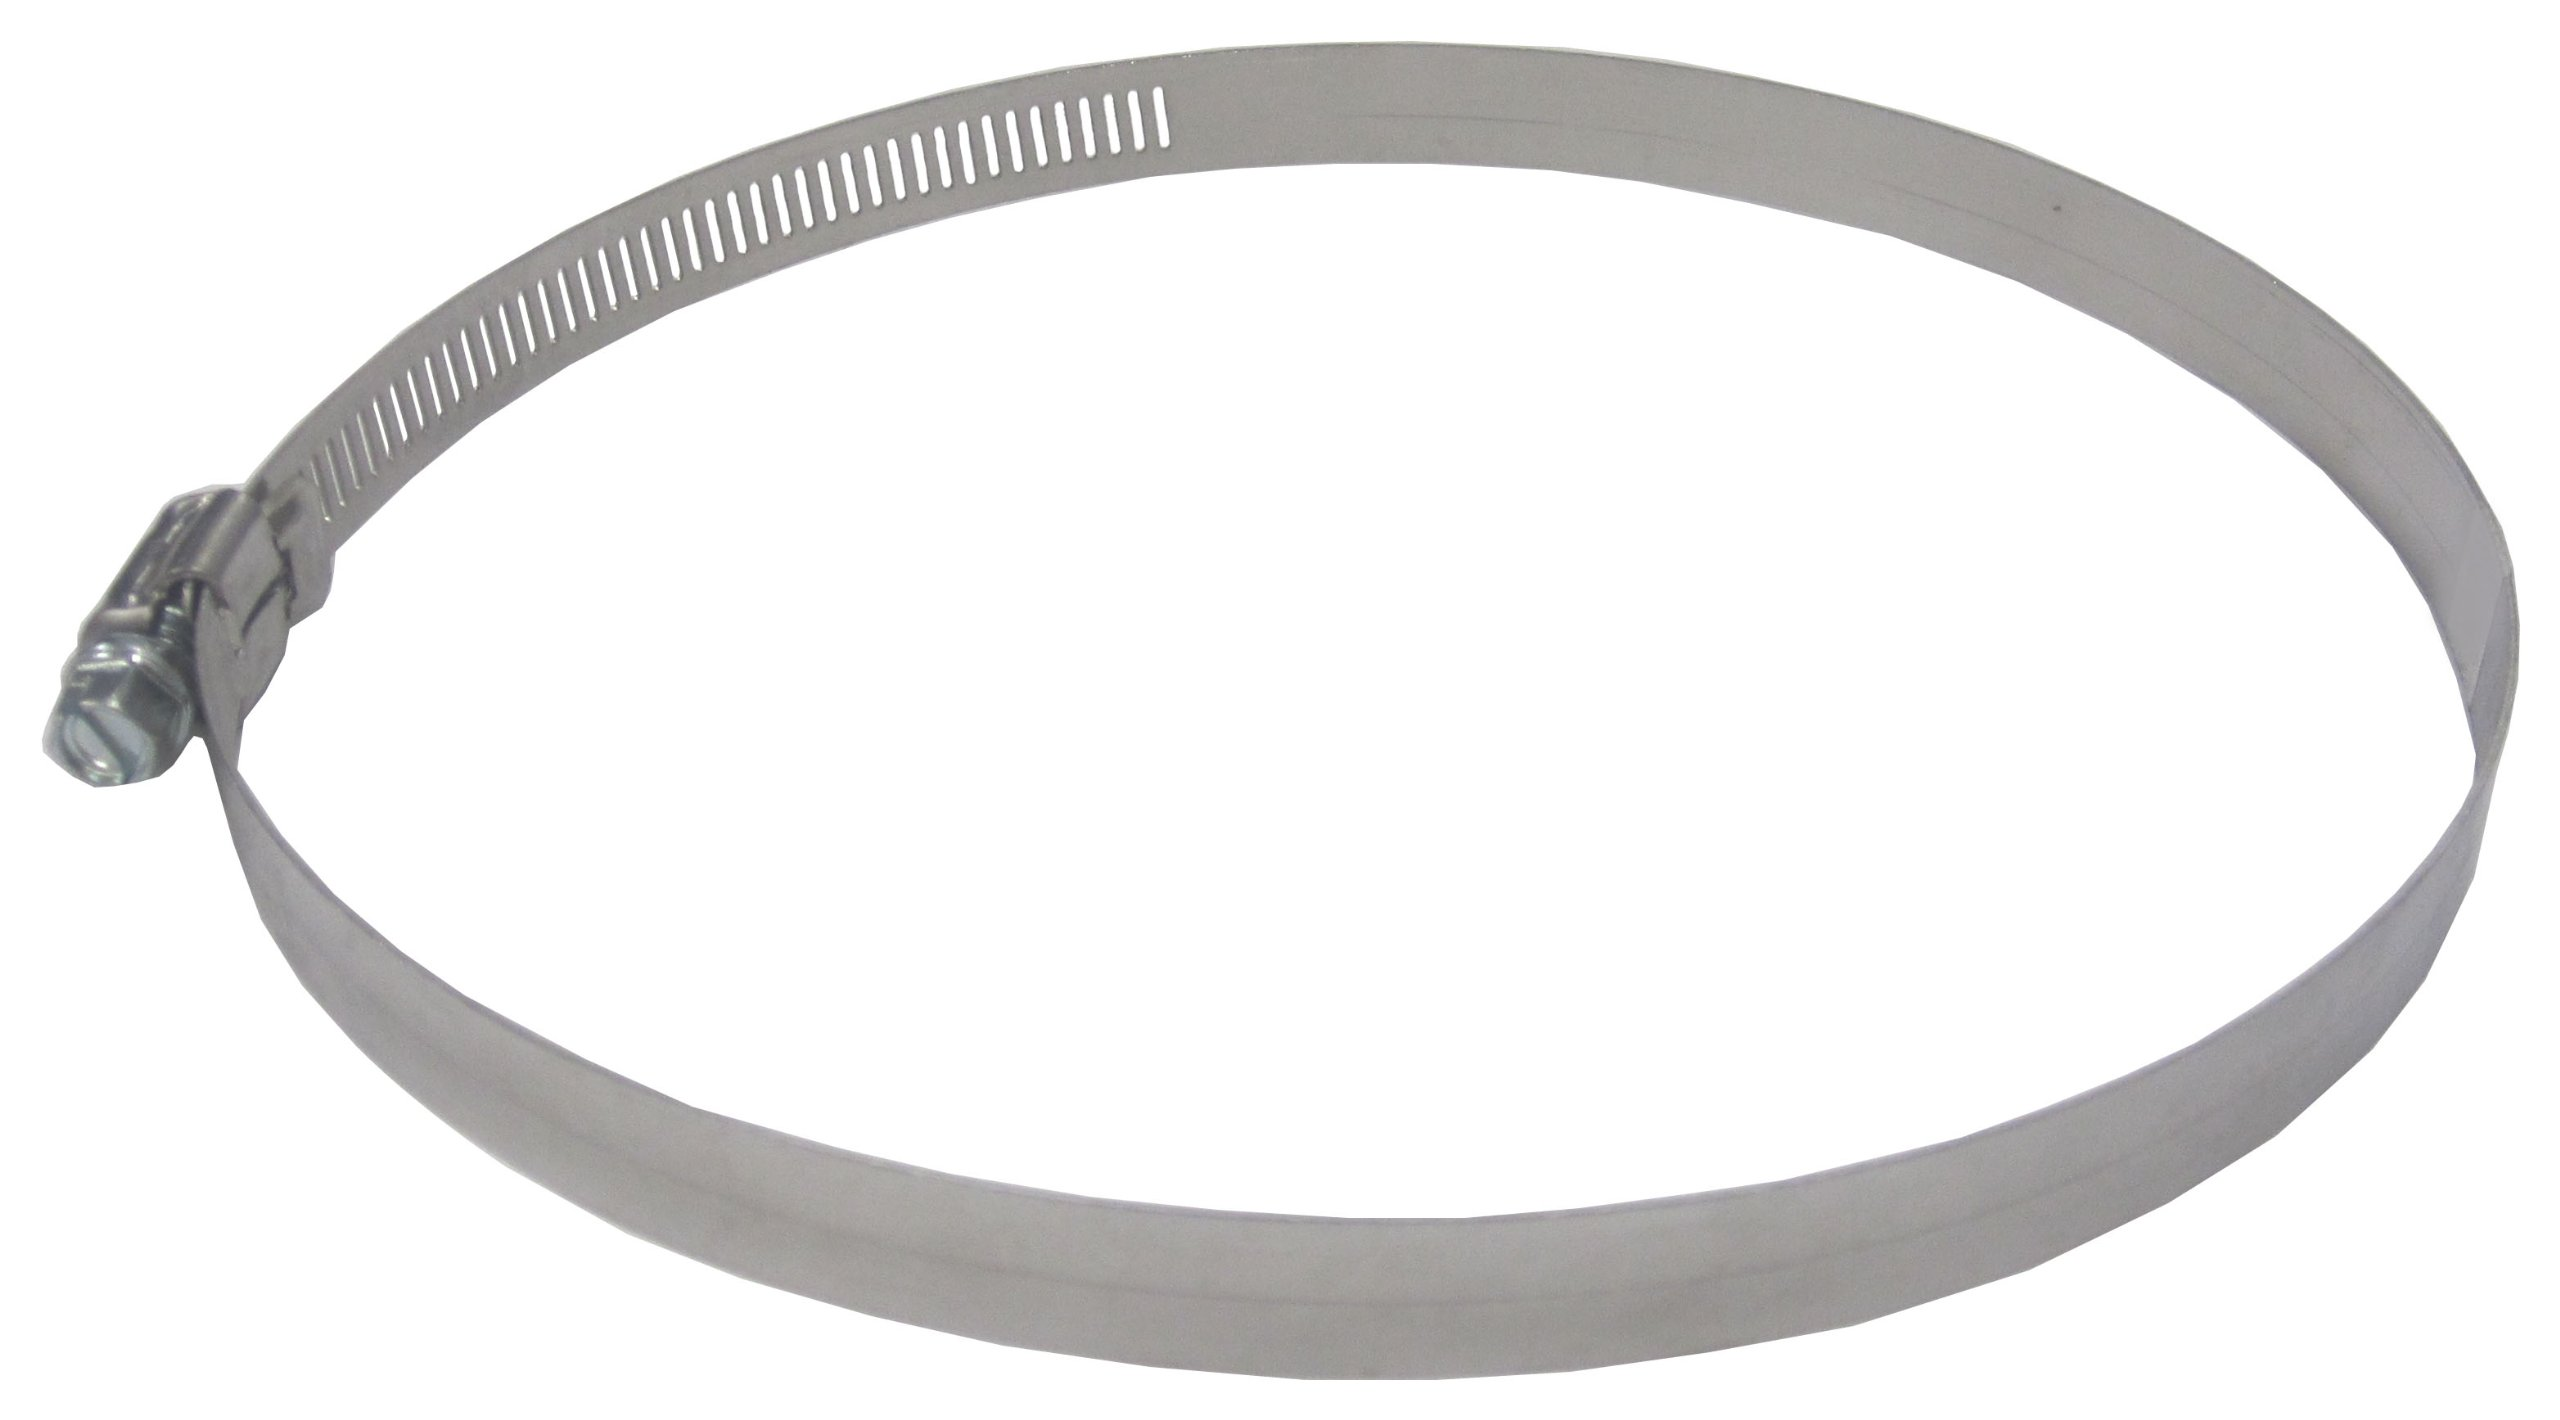 LDR 610 6104 Adjustable Stainless Steel Hose Clamp with Hex Head Screw, 6 1/8-Inch to 7-Inch